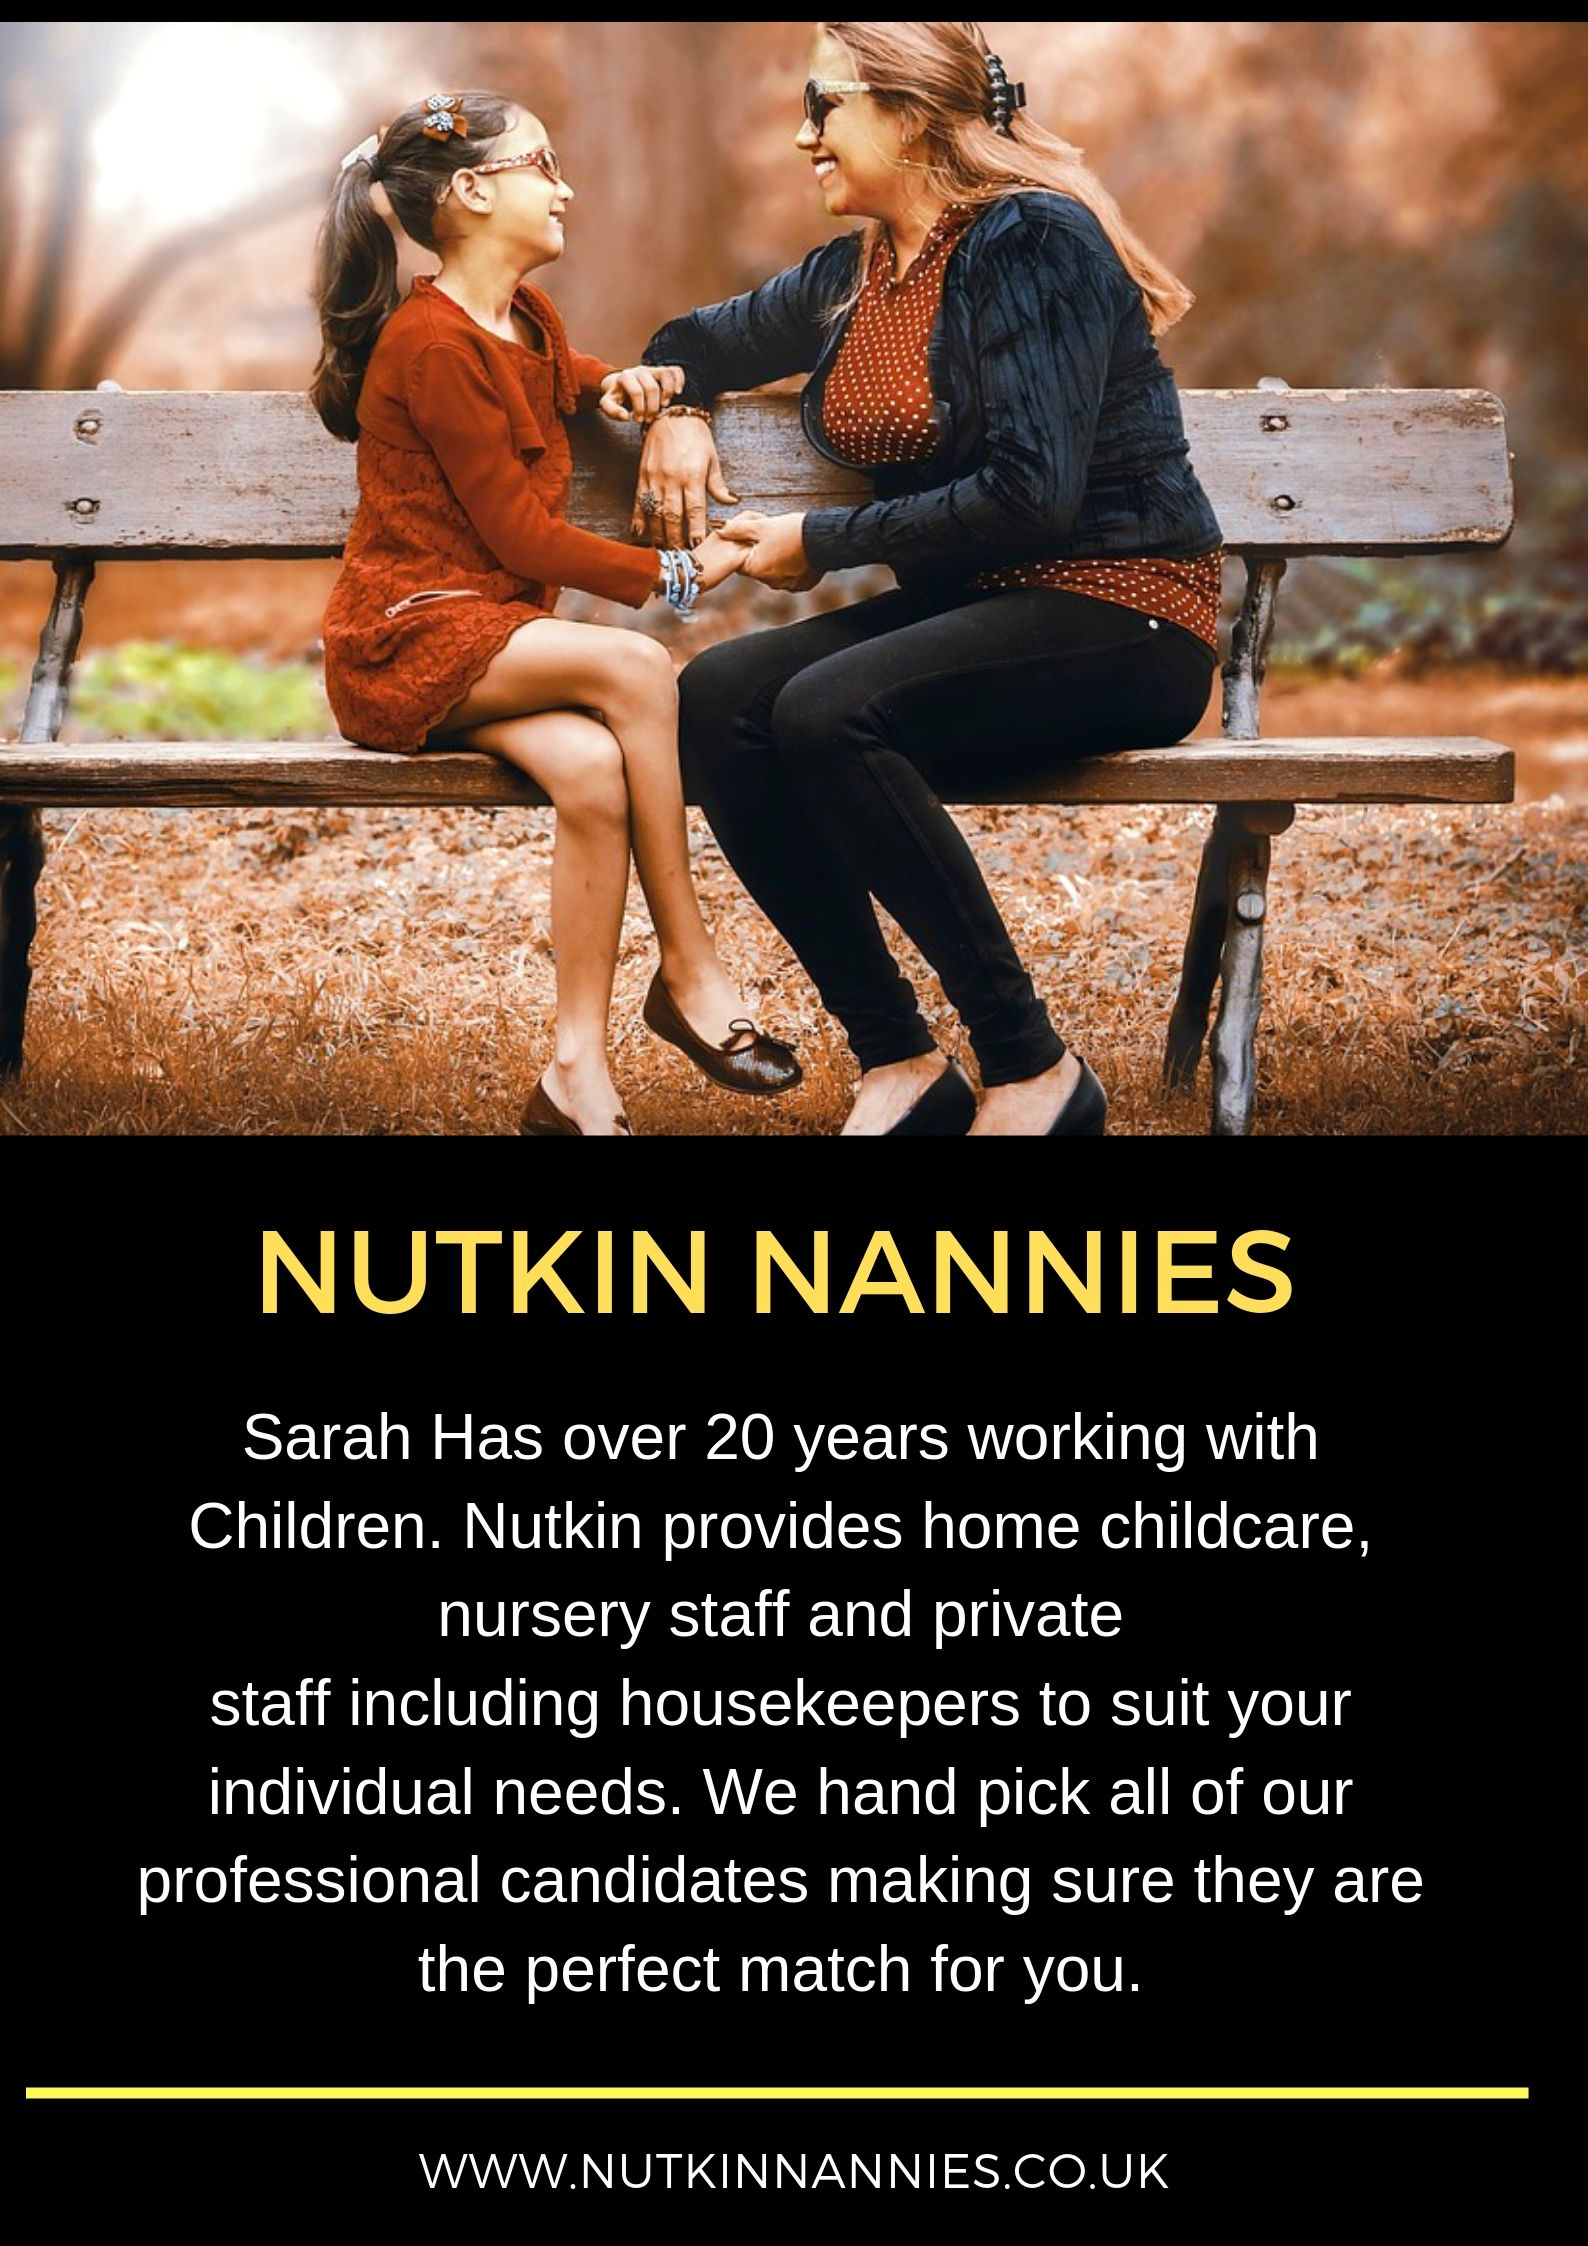 Nutkin Nannies Is A Fast Growing